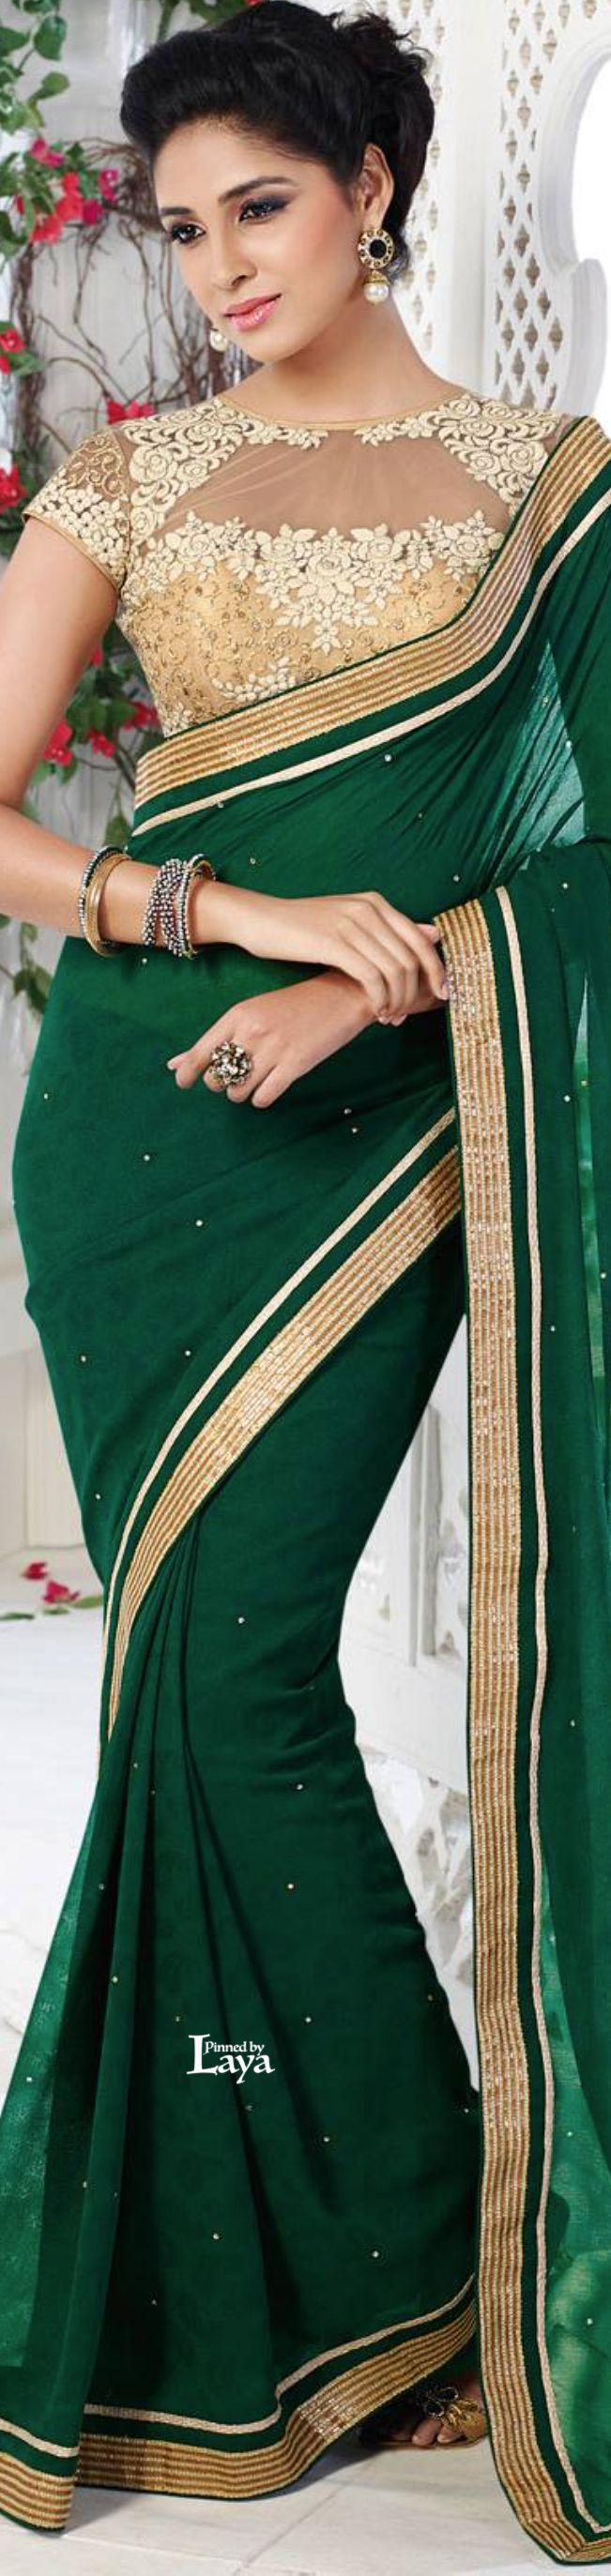 ♔LAYA♔SAREES♔♔♔                                                                                                                                                                                 More